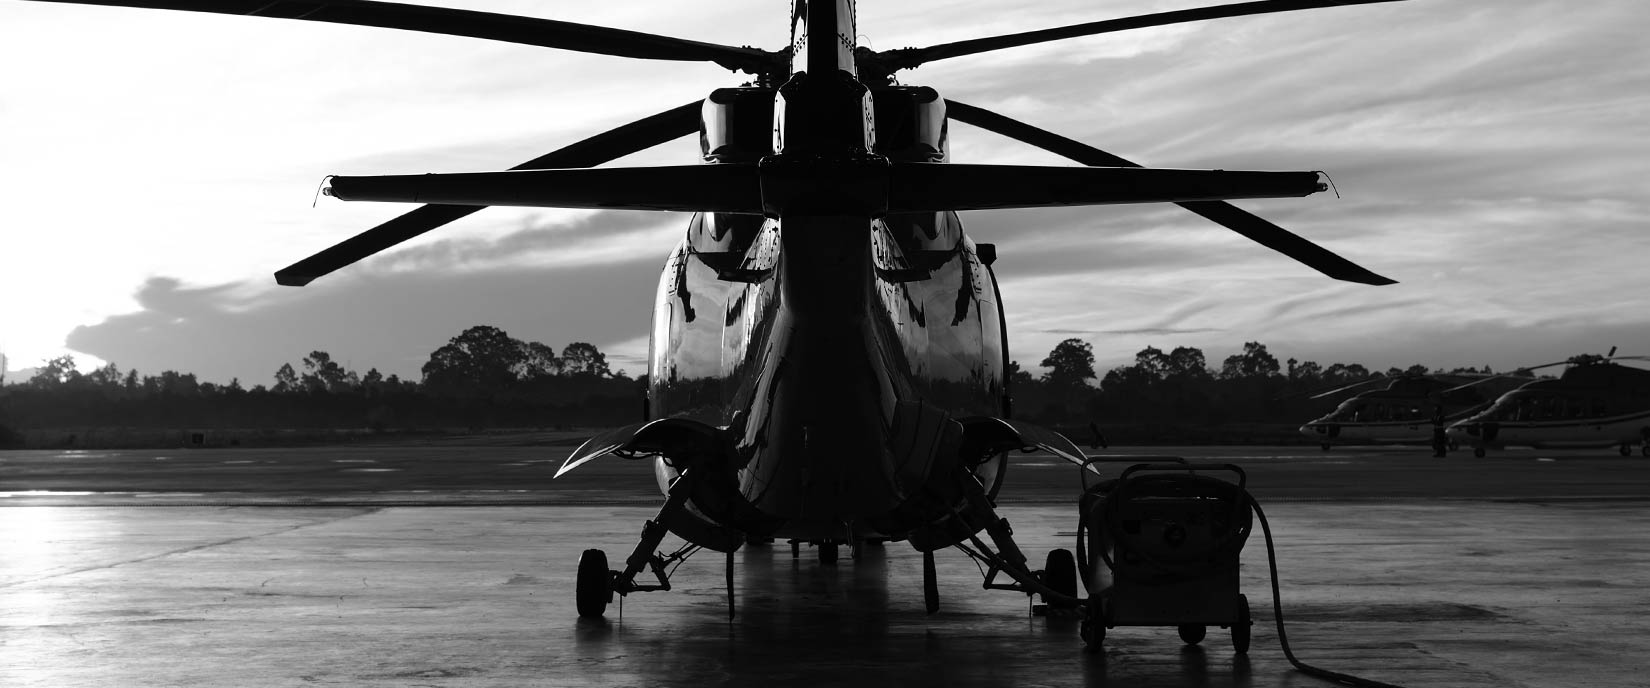 About Us - Helipartnership is an aviation brokerage set up in response to the growing UK helicopter charter market.